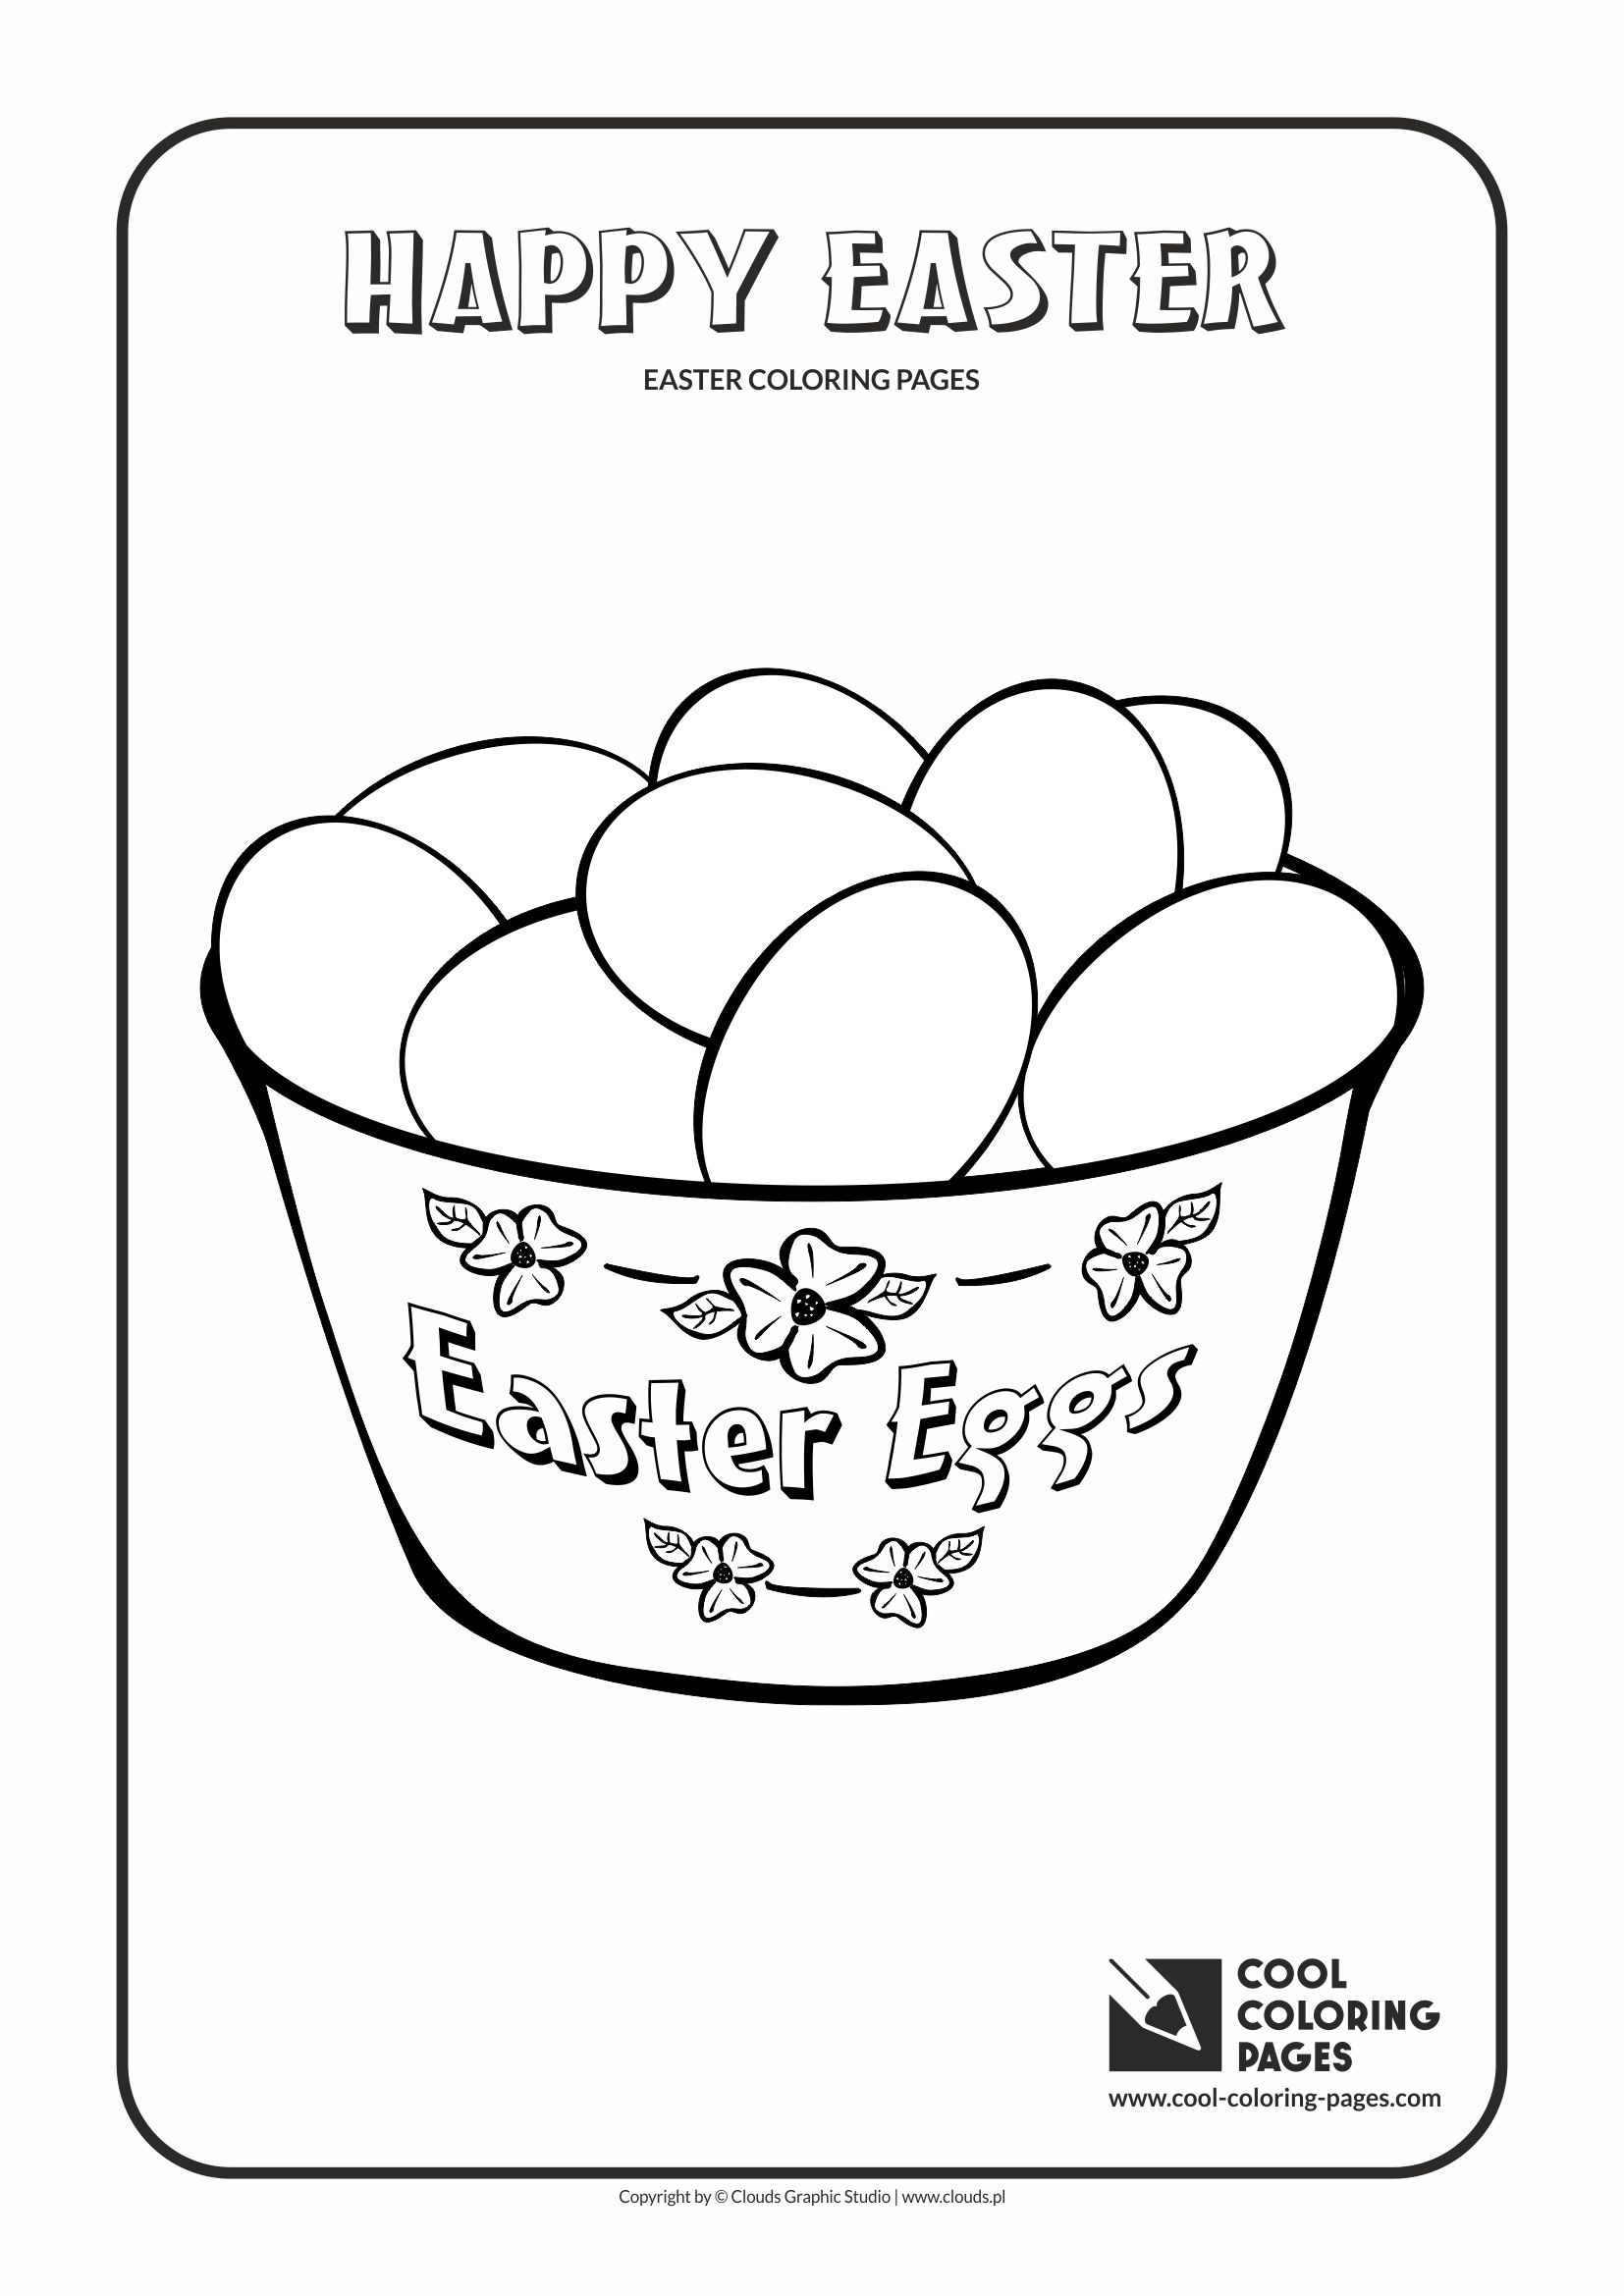 Cool Coloring Pages - Holidays / Easter eggs no 1 / Coloring page with Easter eggs no 1